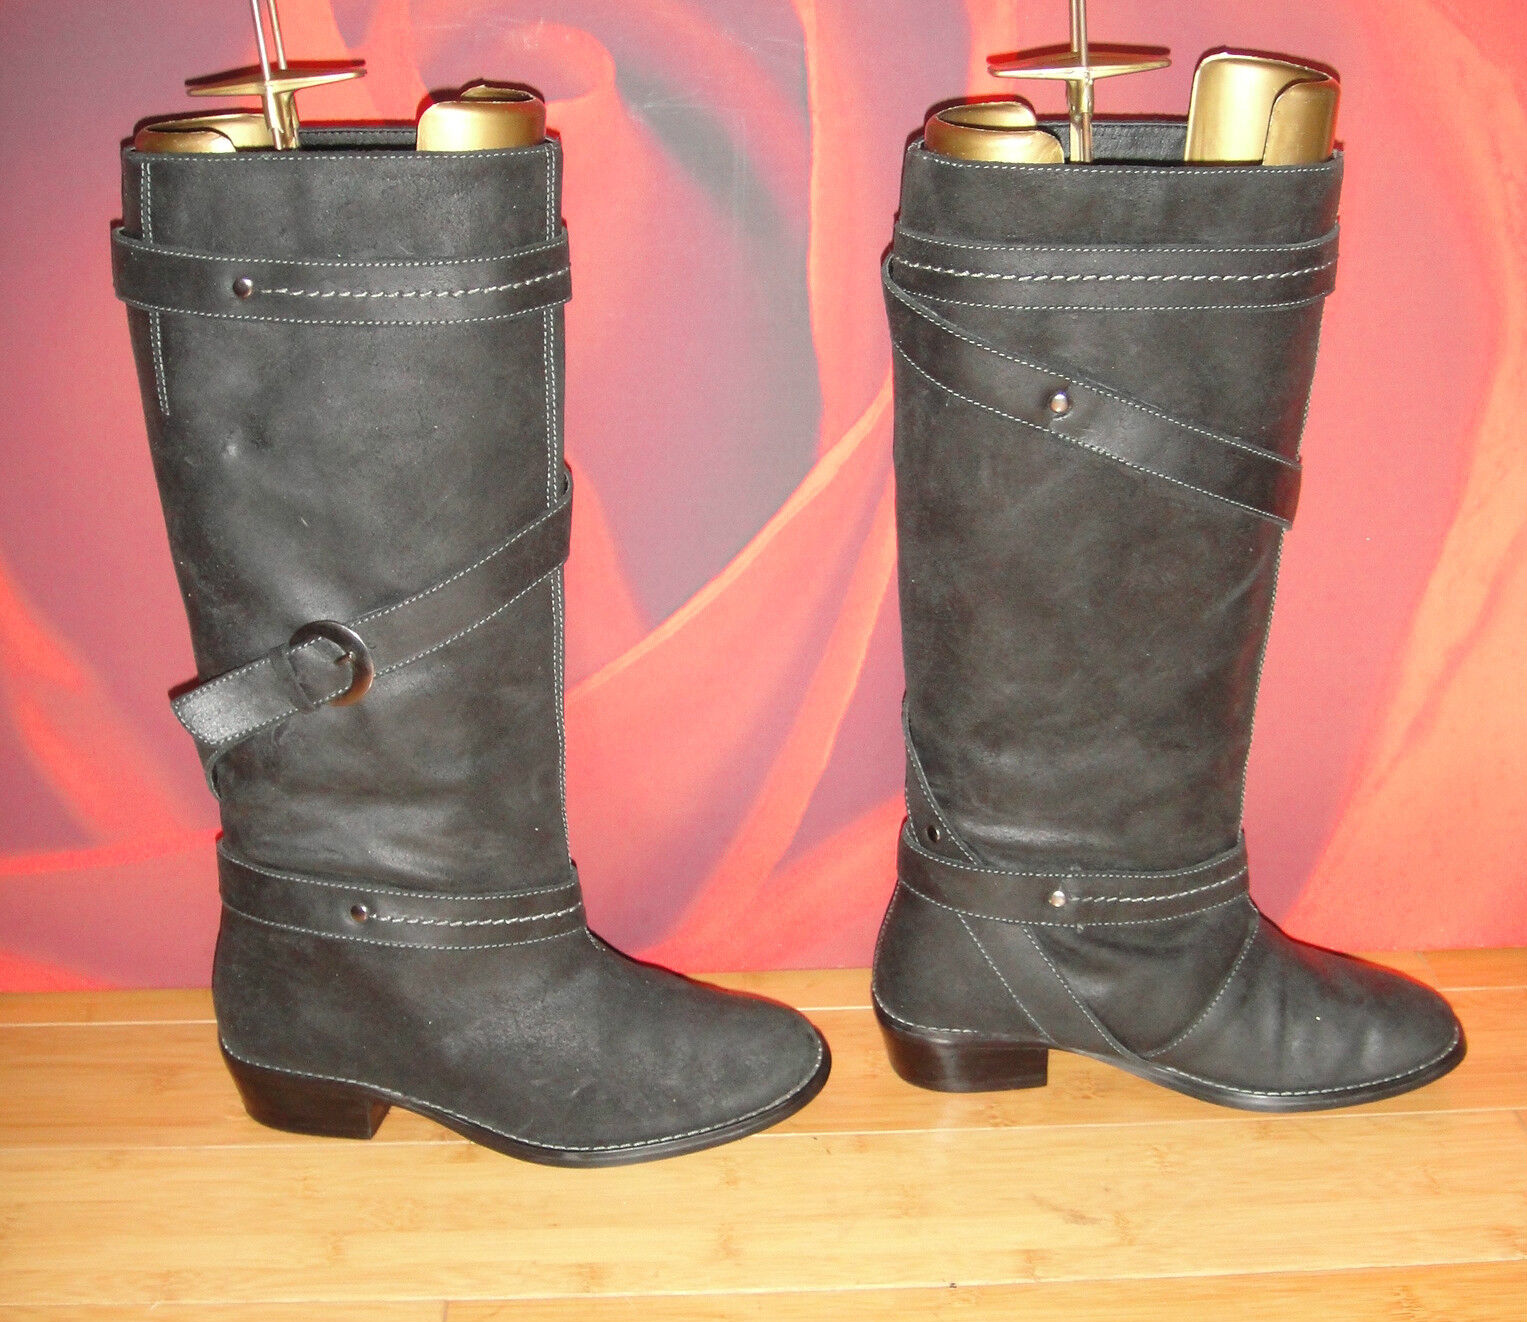 41 DgoldTHY PERKINS BLACK DISTRESSED LEATHER RIDING STYLE BOOTS  UK 4 EU 37